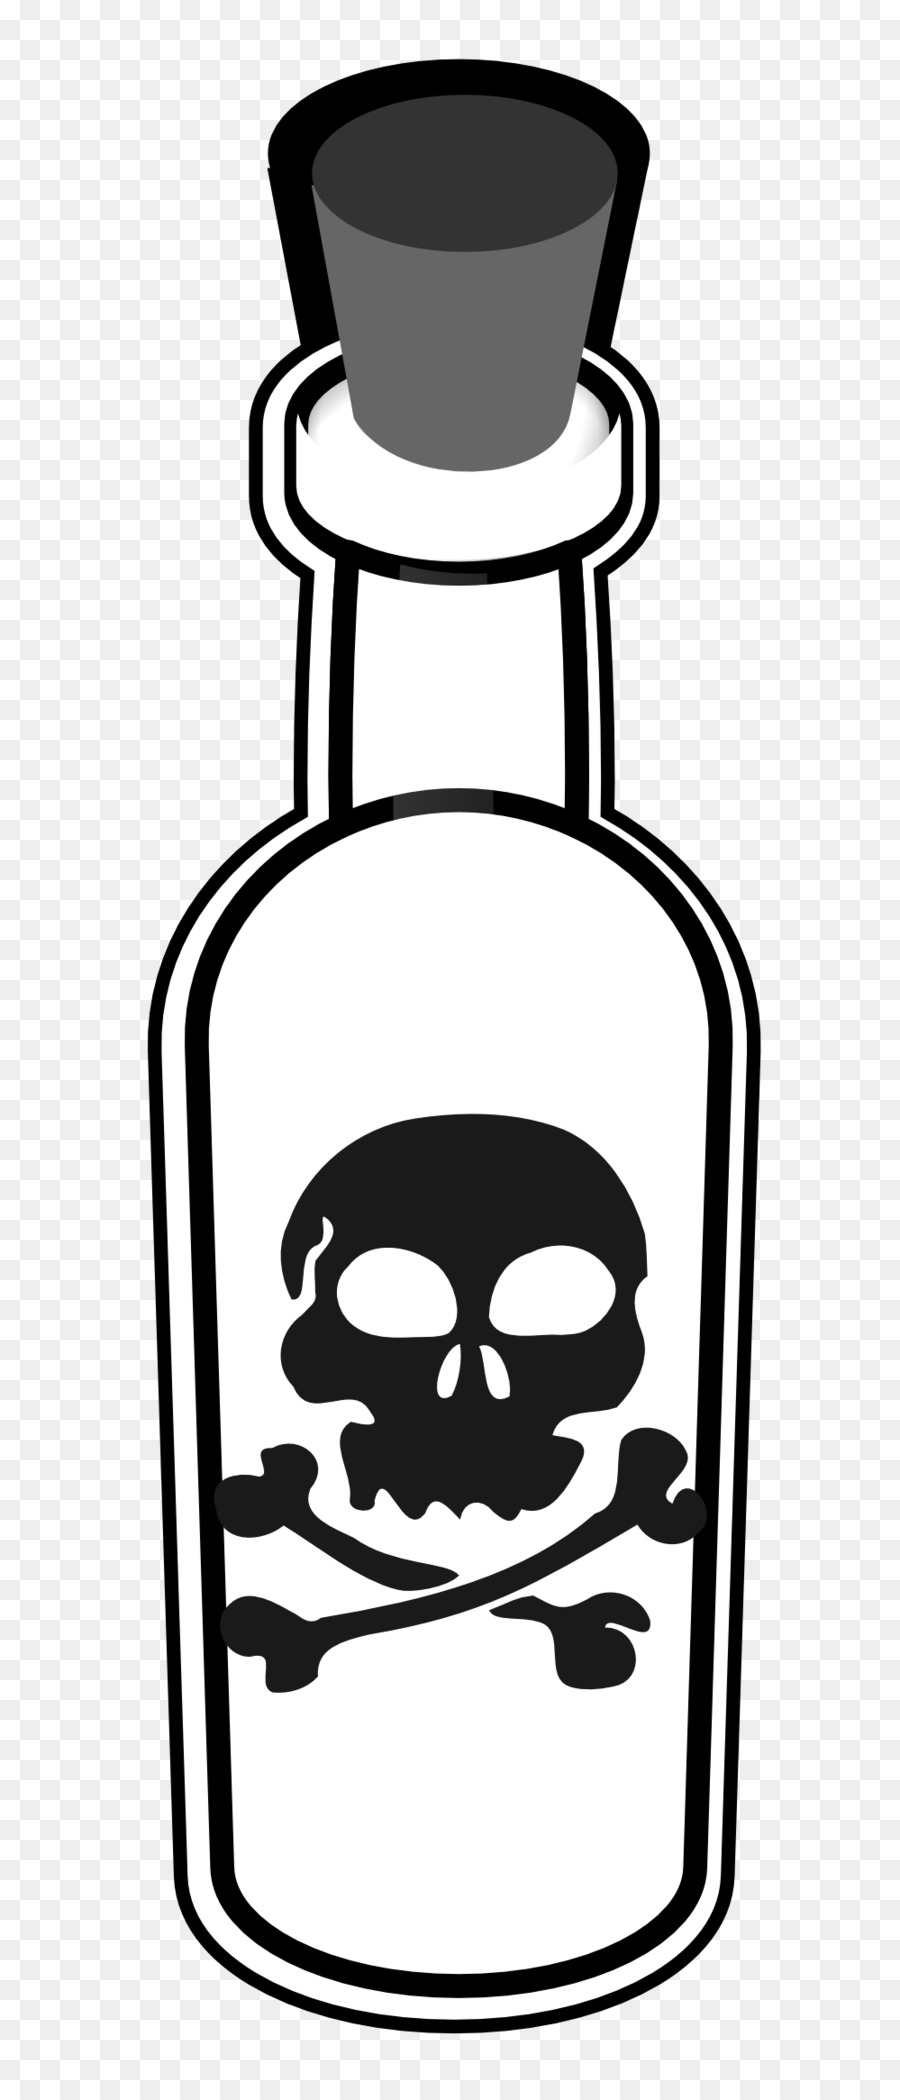 poisoning free content clip art poison pictures png download 999 rh kisspng com poison clipart black and white poison sign clipart